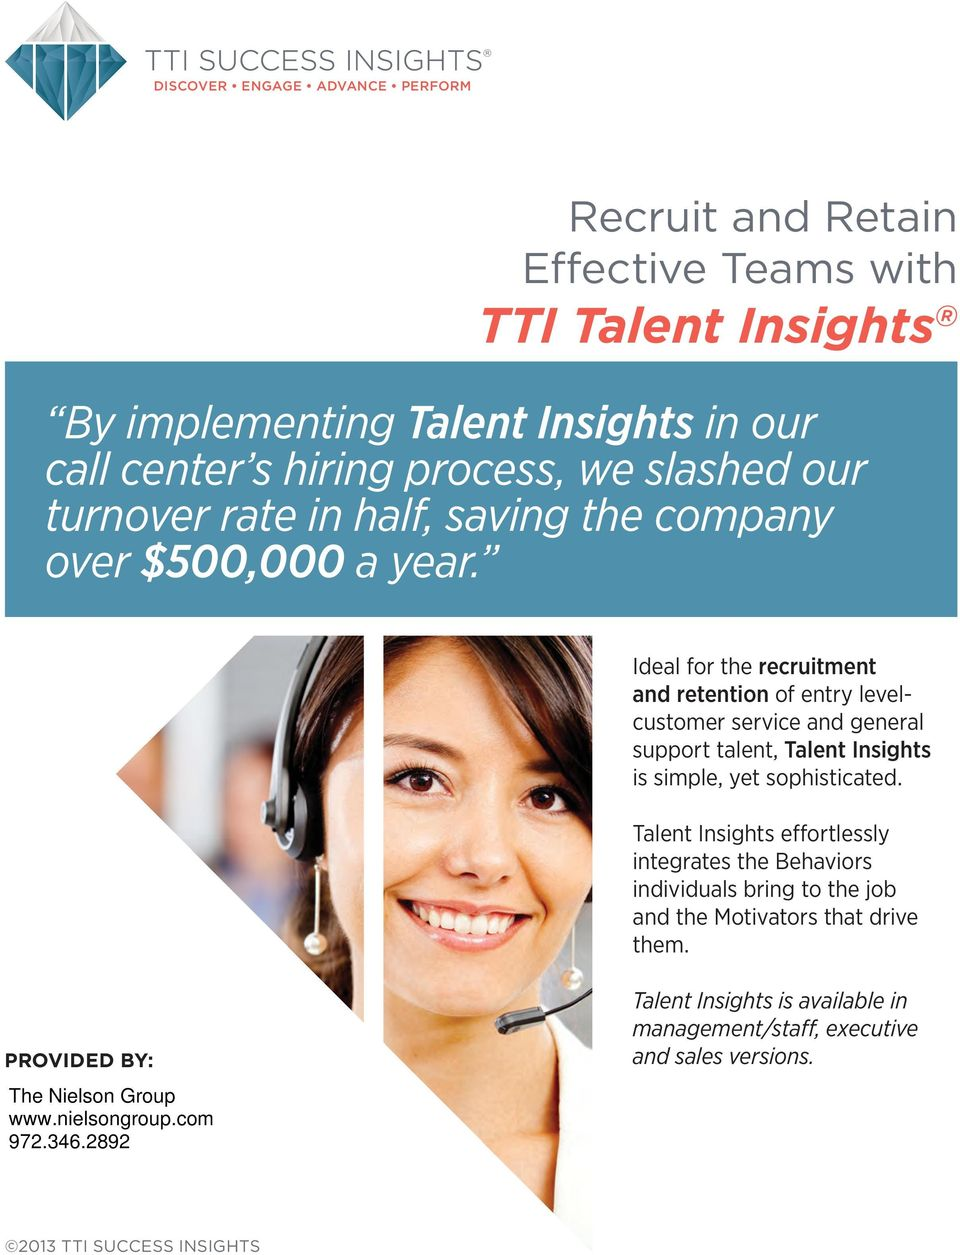 Ideal for the recruitment and retention of entry levelcustomer service and general support talent, Talent Insights is simple, yet sophisticated.